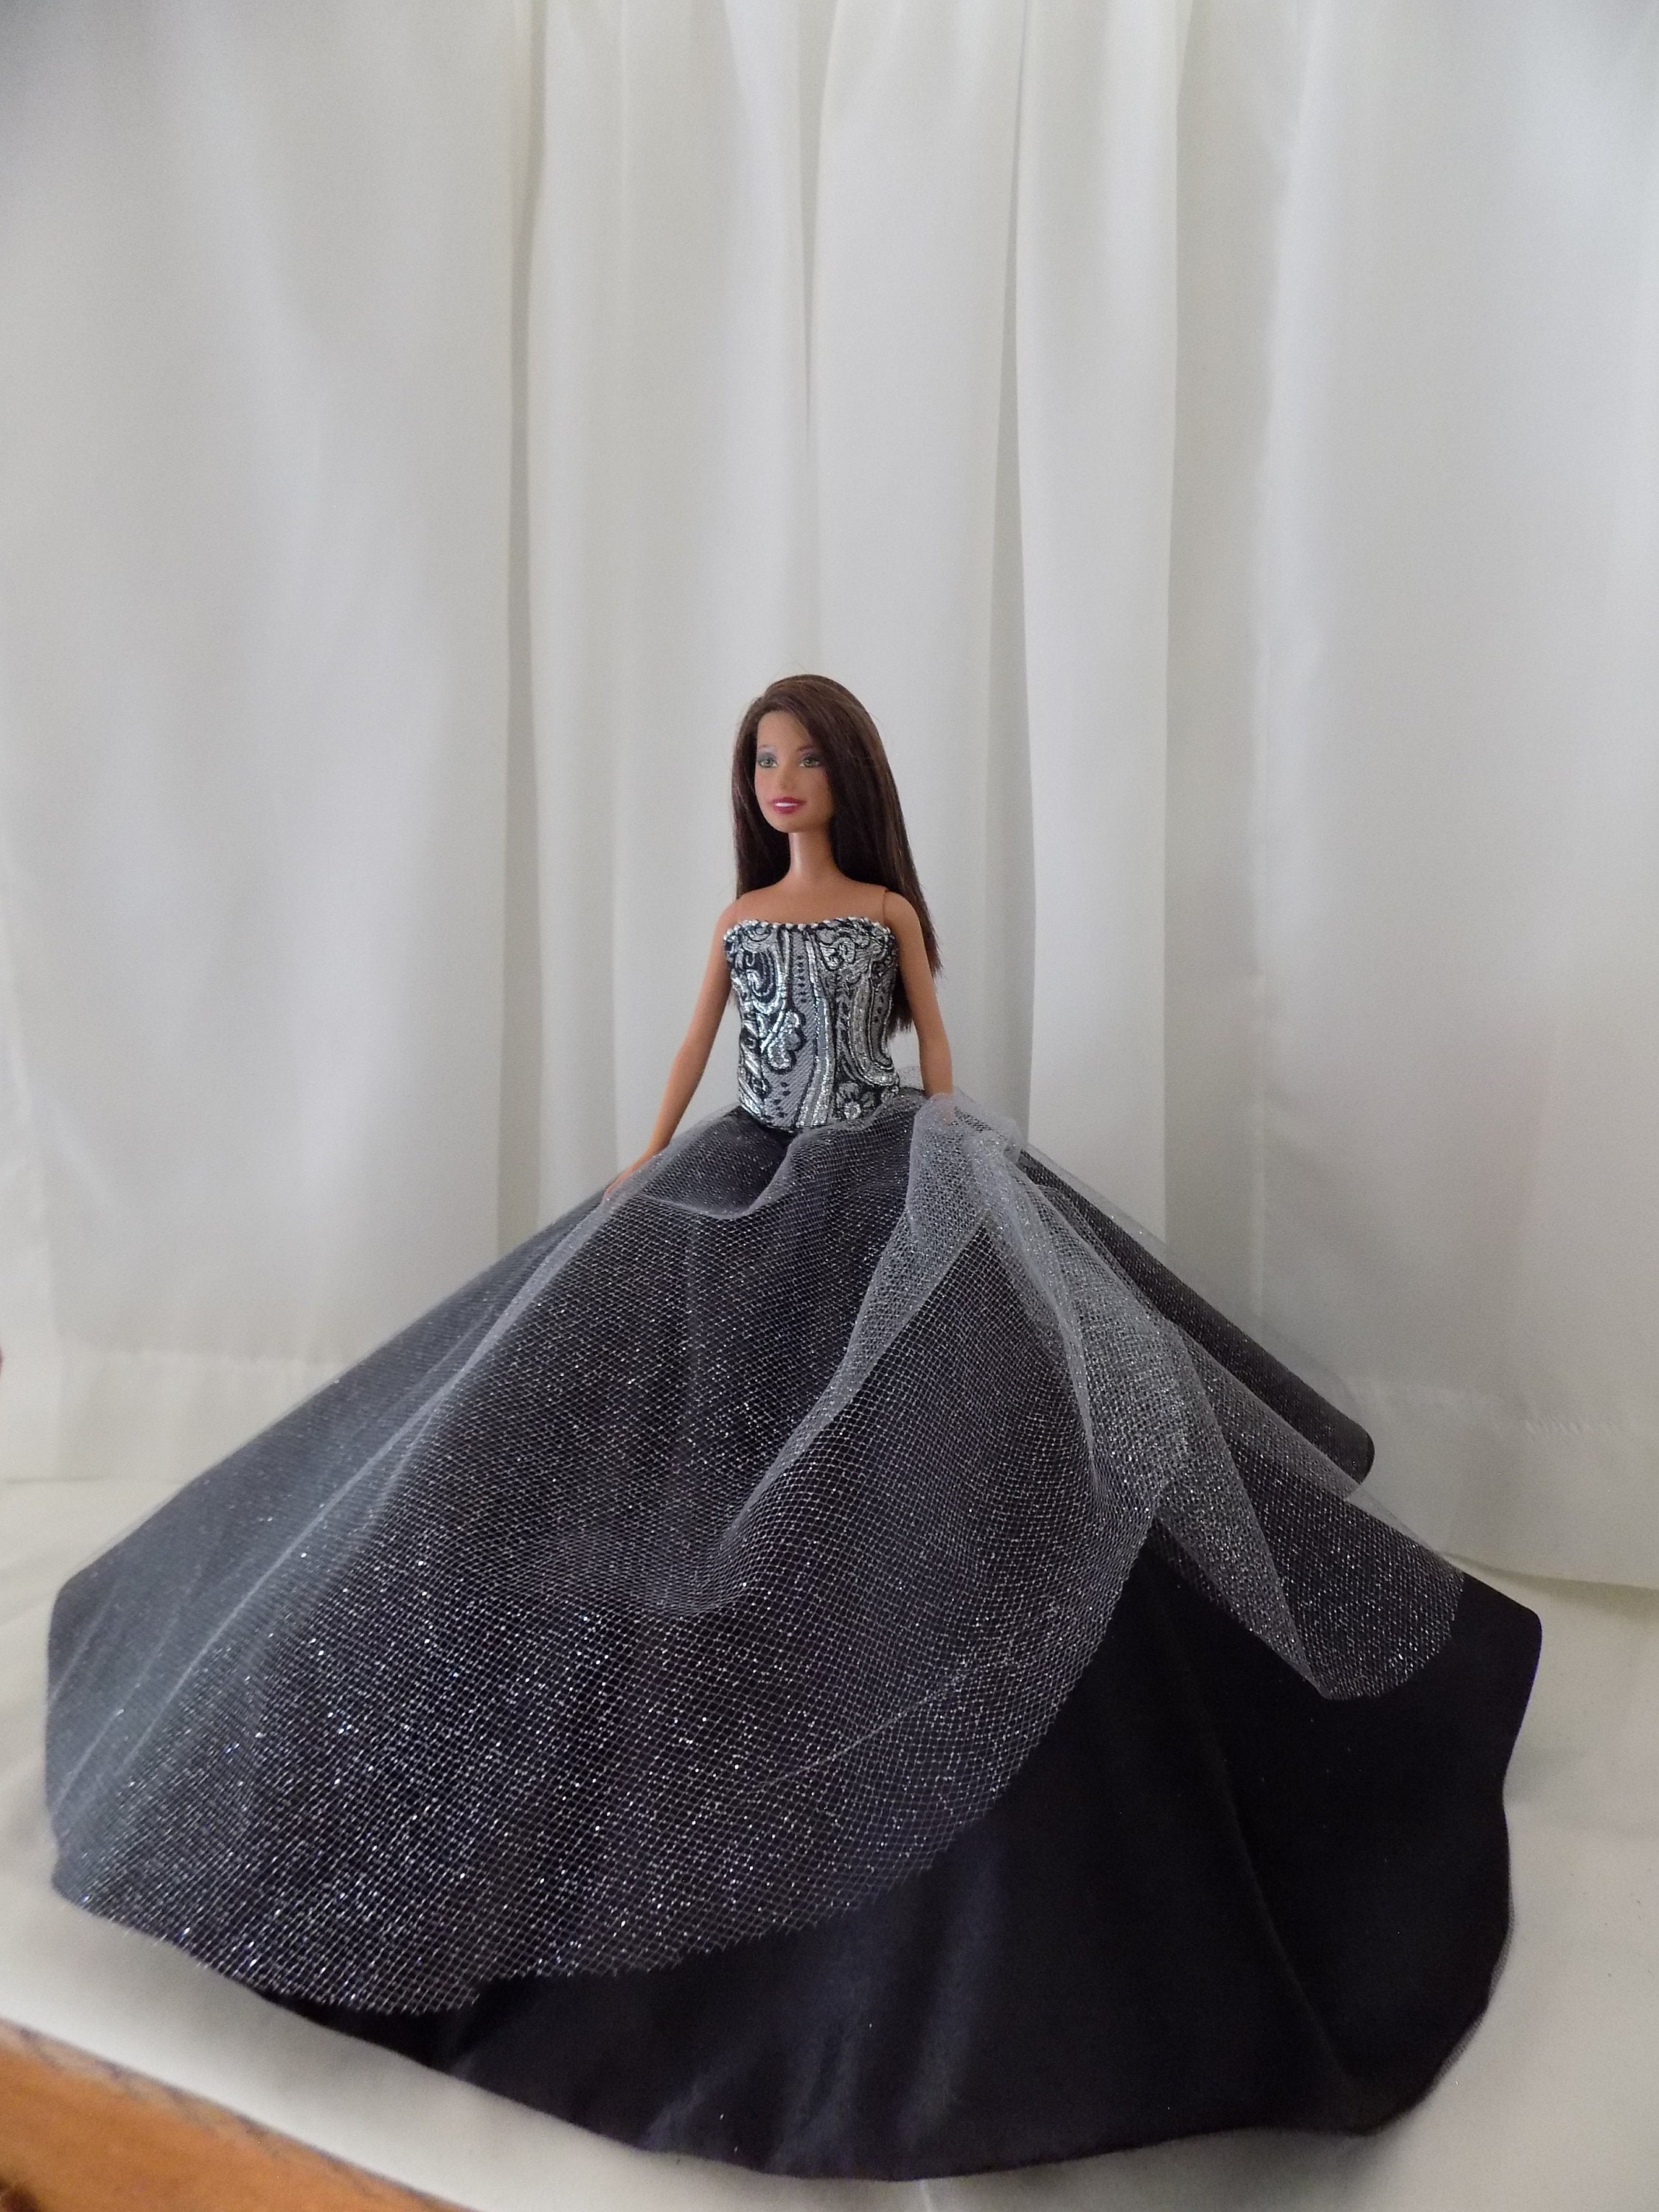 Fashion Royalty Silver  Bead Evening Dress Gown  For 11.5 inch Doll